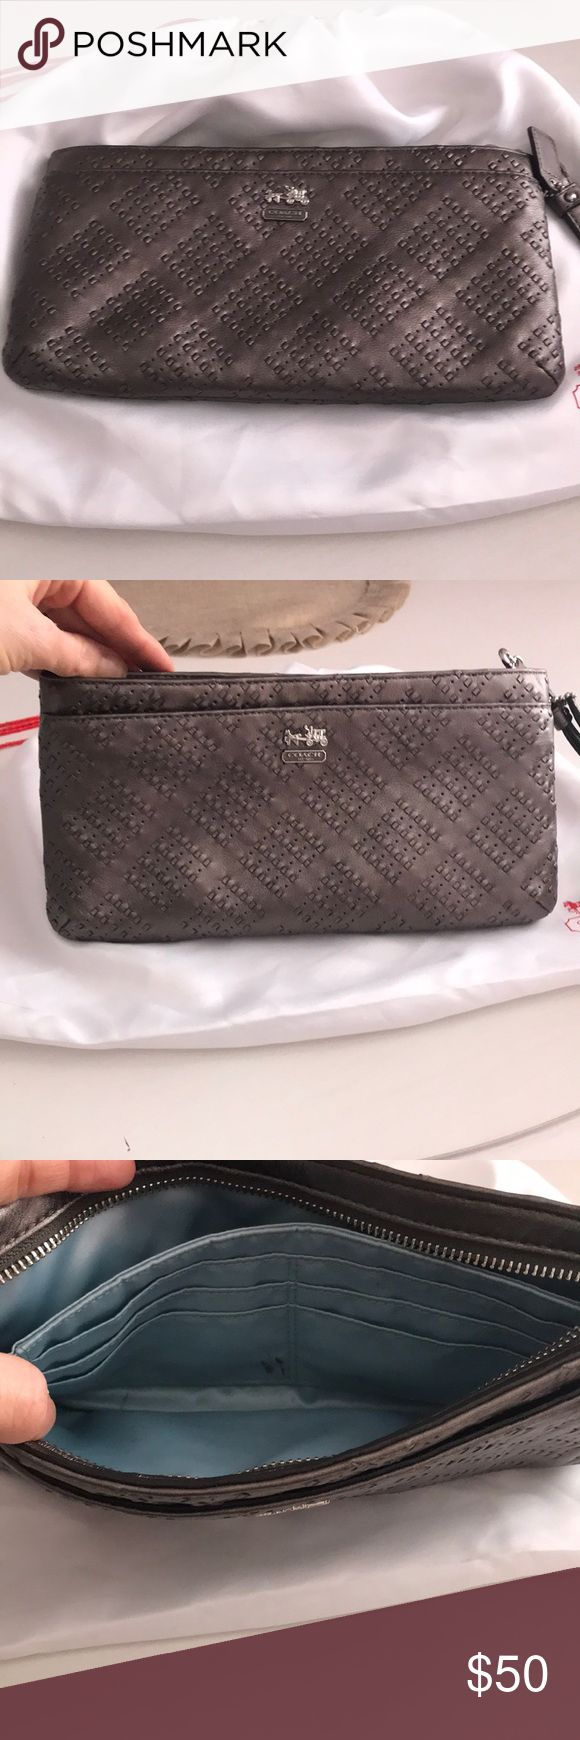 Authentic Coach Clutch/Wristlet Authentic Coach Wristlet. Dark Silver with light blue satin inside. The inside has wear and tear, some pen marks, etc. the outside is in excellent Condition. Coach Bags Clutches & Wristlets